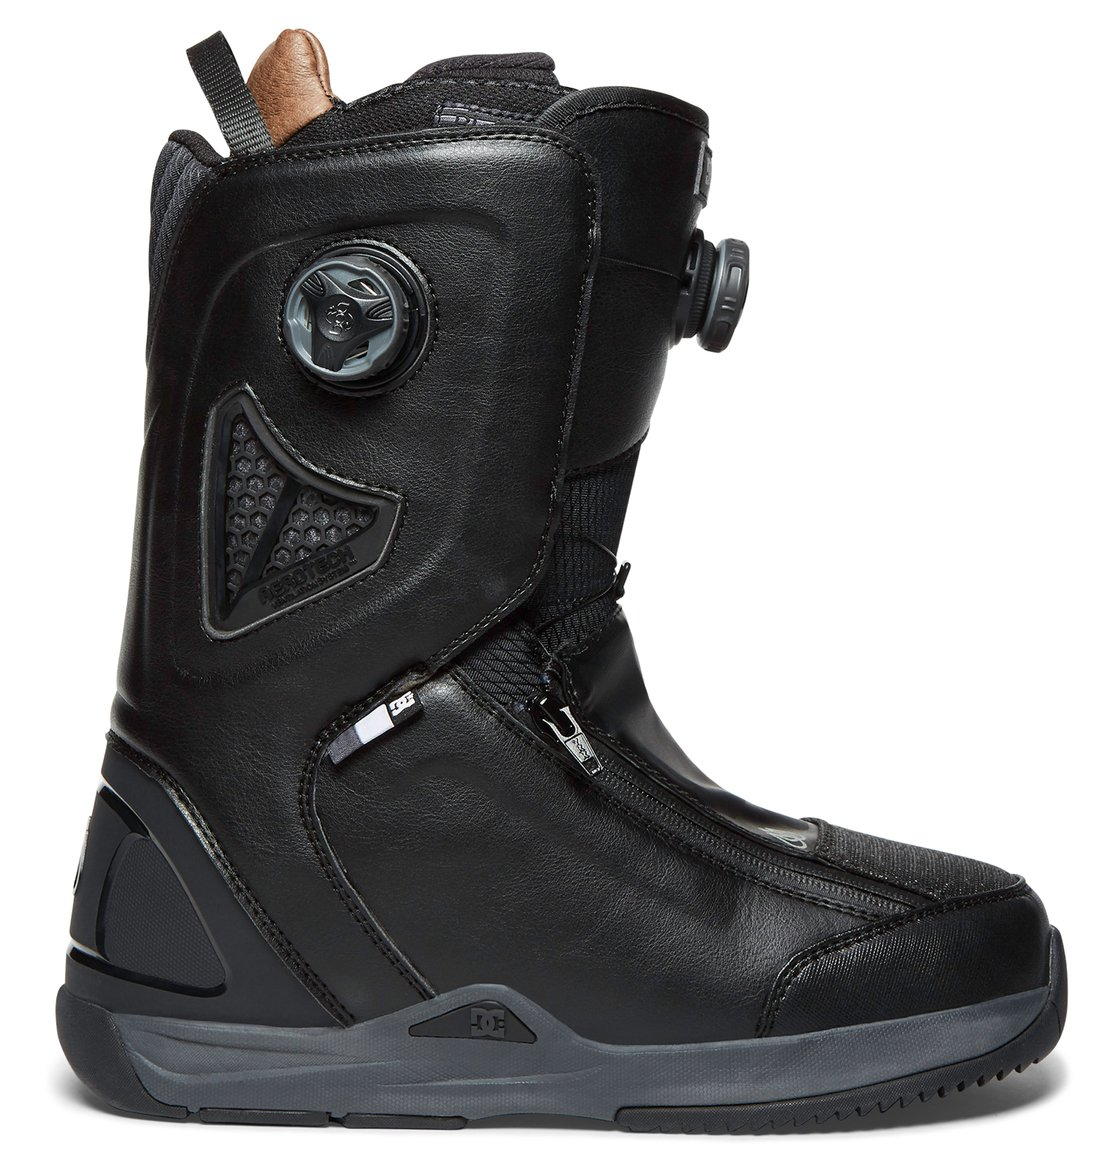 men 39 s travis rice boa snowboard boots adyo100029 dc shoes. Black Bedroom Furniture Sets. Home Design Ideas